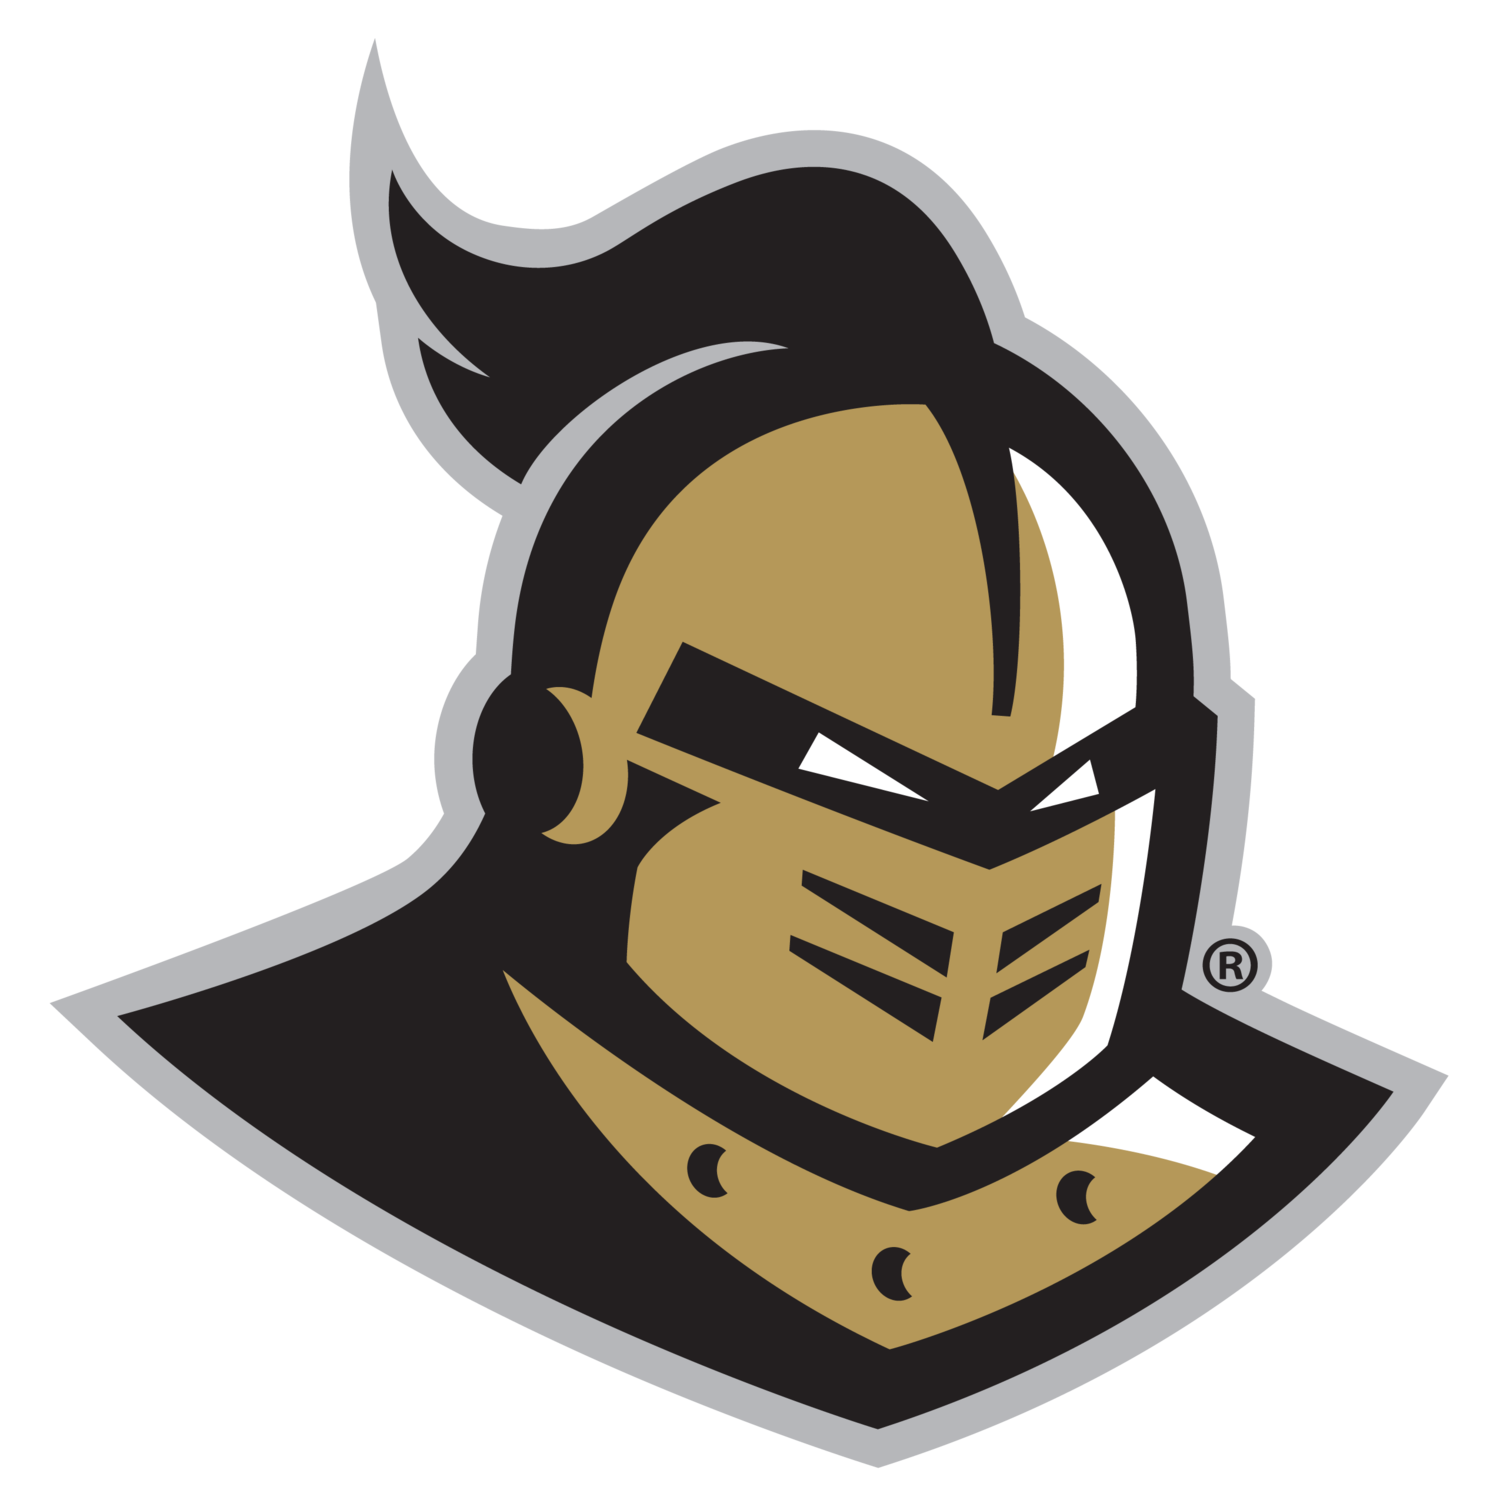 Free logo download clip. Transparent knight head png black and white download